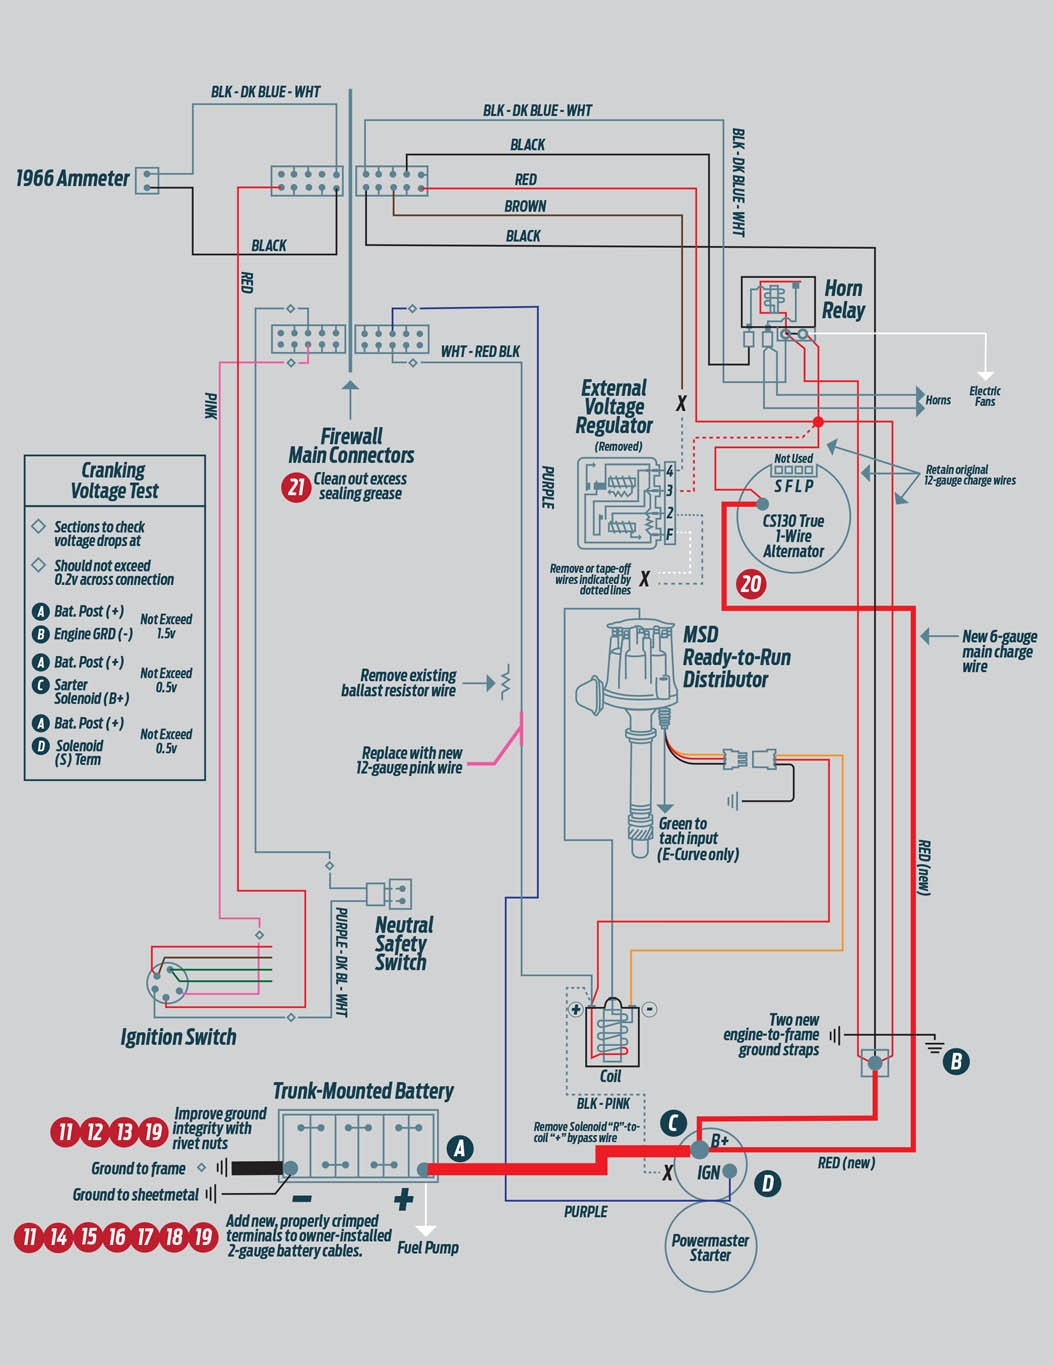 small resolution of 1966 chevelle dash wiring harness free download diagram wiring library 1966 chevelle wiring diagram online 1966